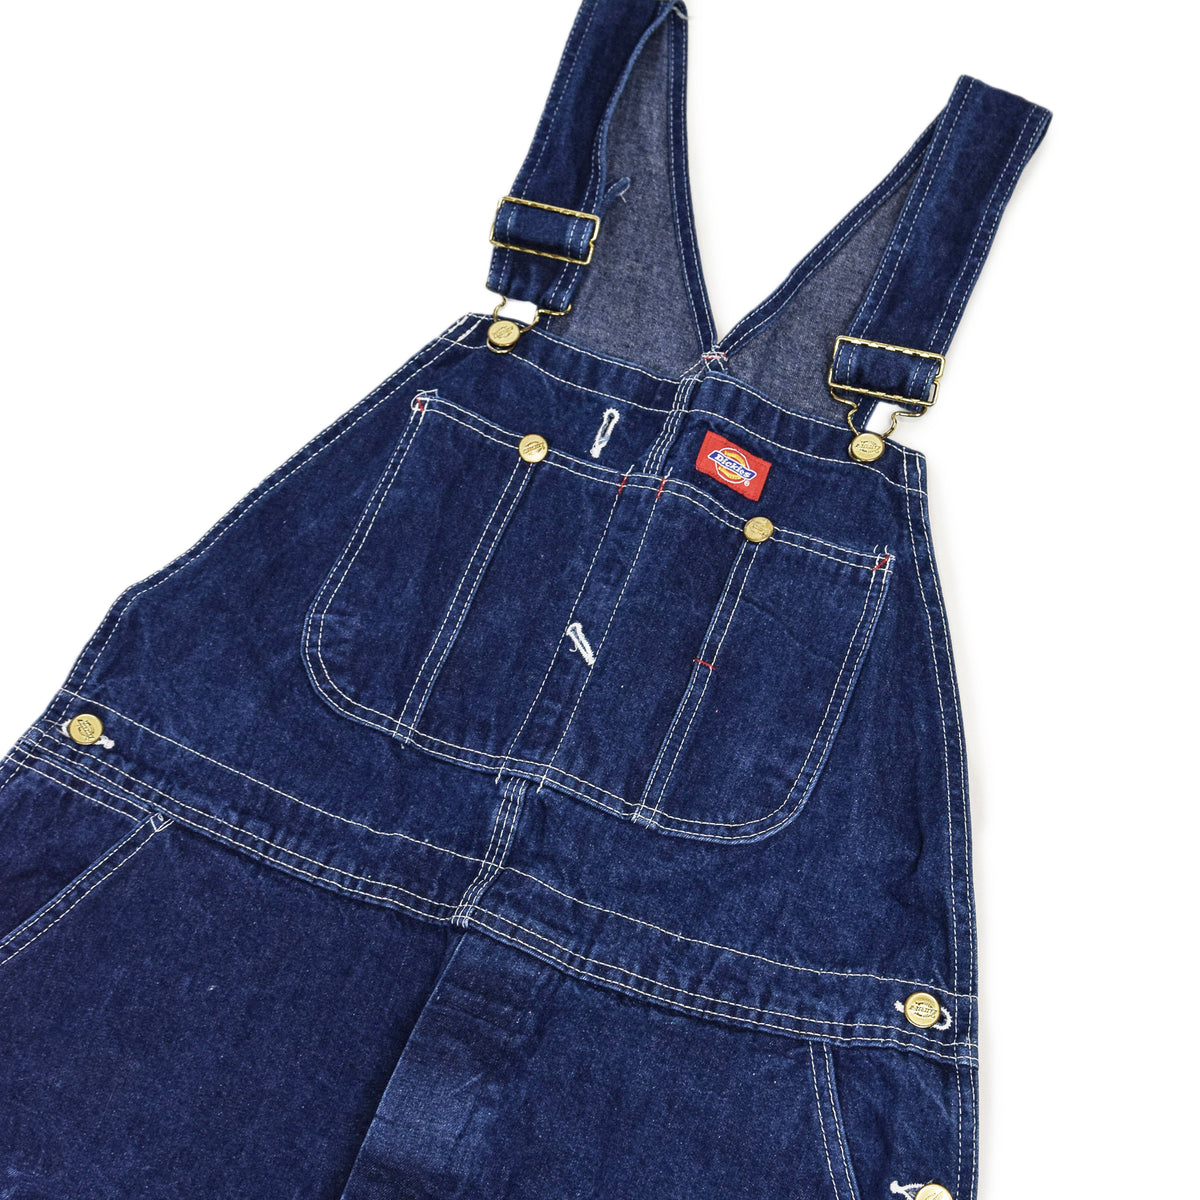 Vintage Dickies Denim Work Dungarees Blue Bib Overalls Trousers M chest